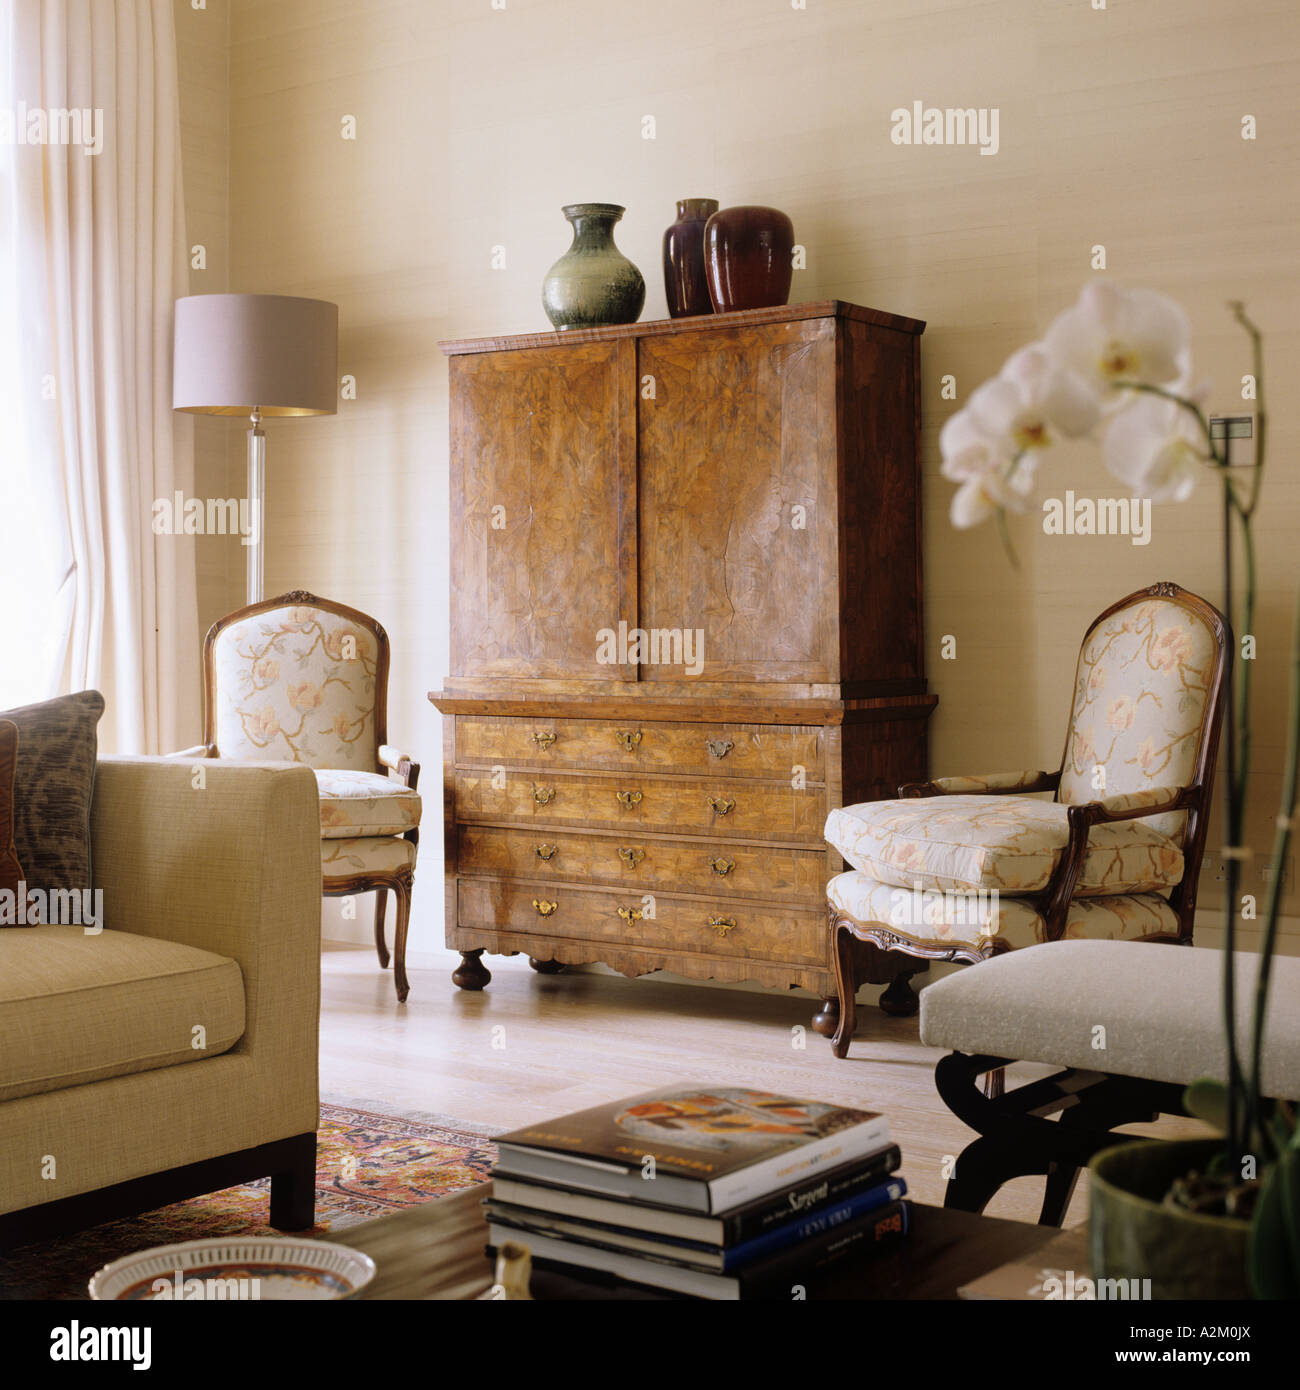 Louis xv living room furniture - Antique Walnut Cabinet And Louis Xv Chairs In Living Room Of London Apartment